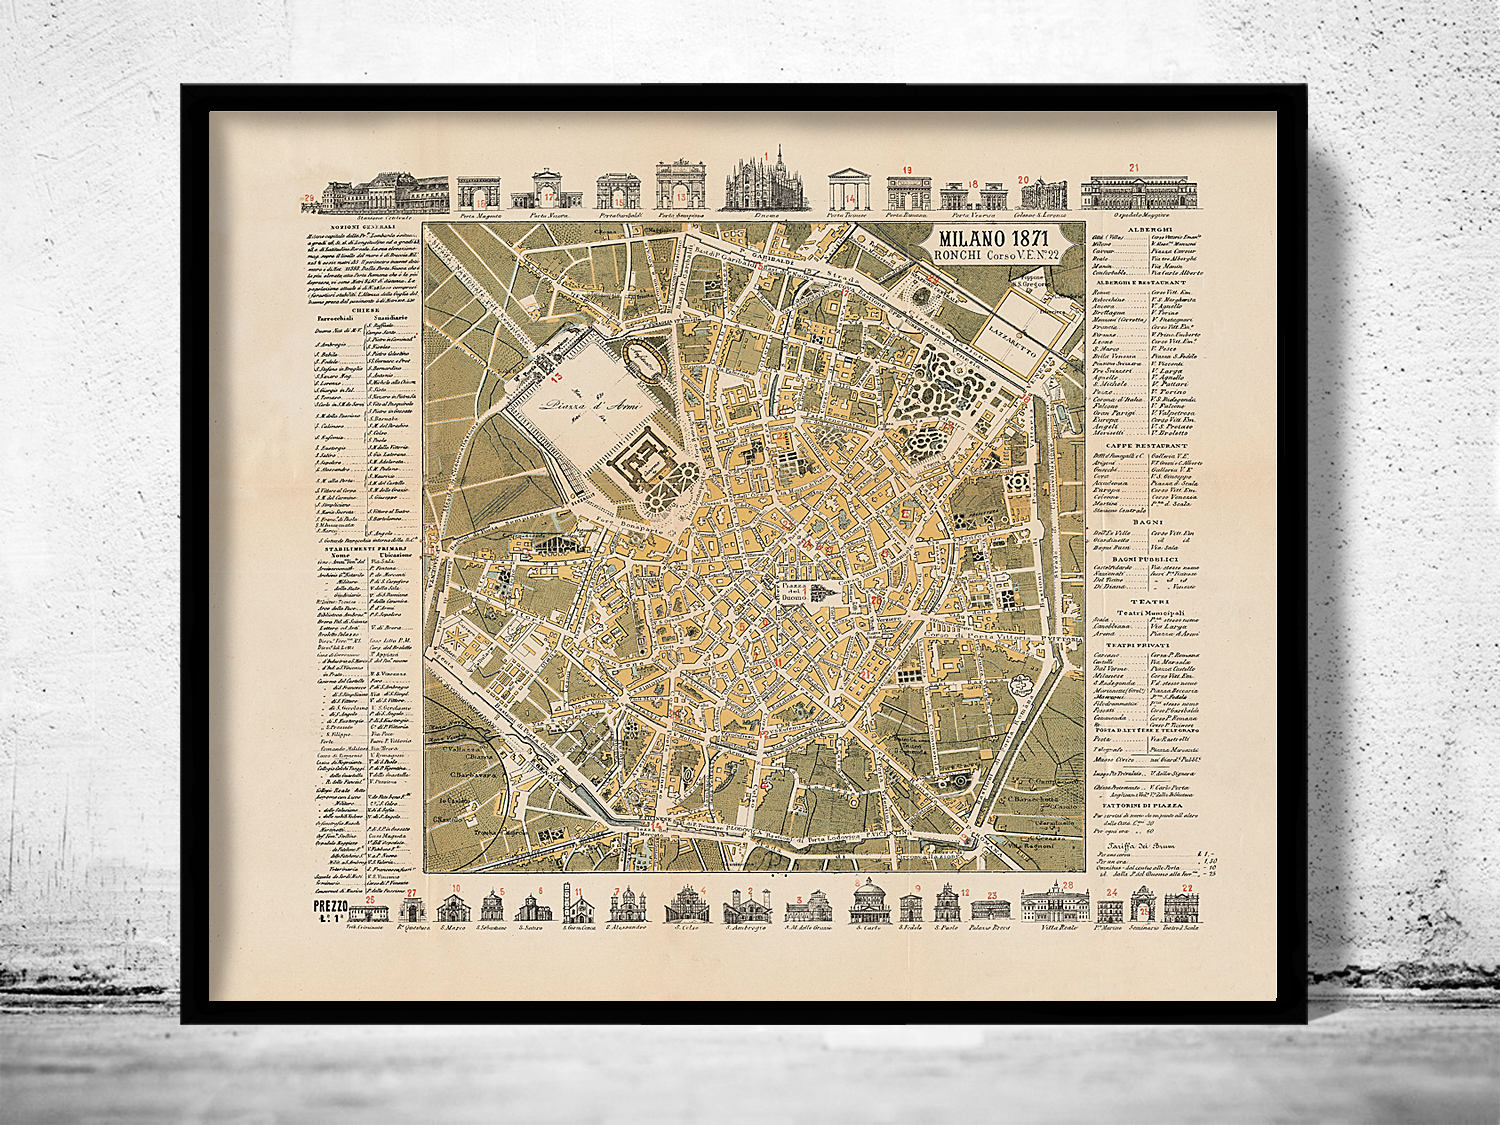 Old map of milan milano 1871 italy zoom gumiabroncs Image collections